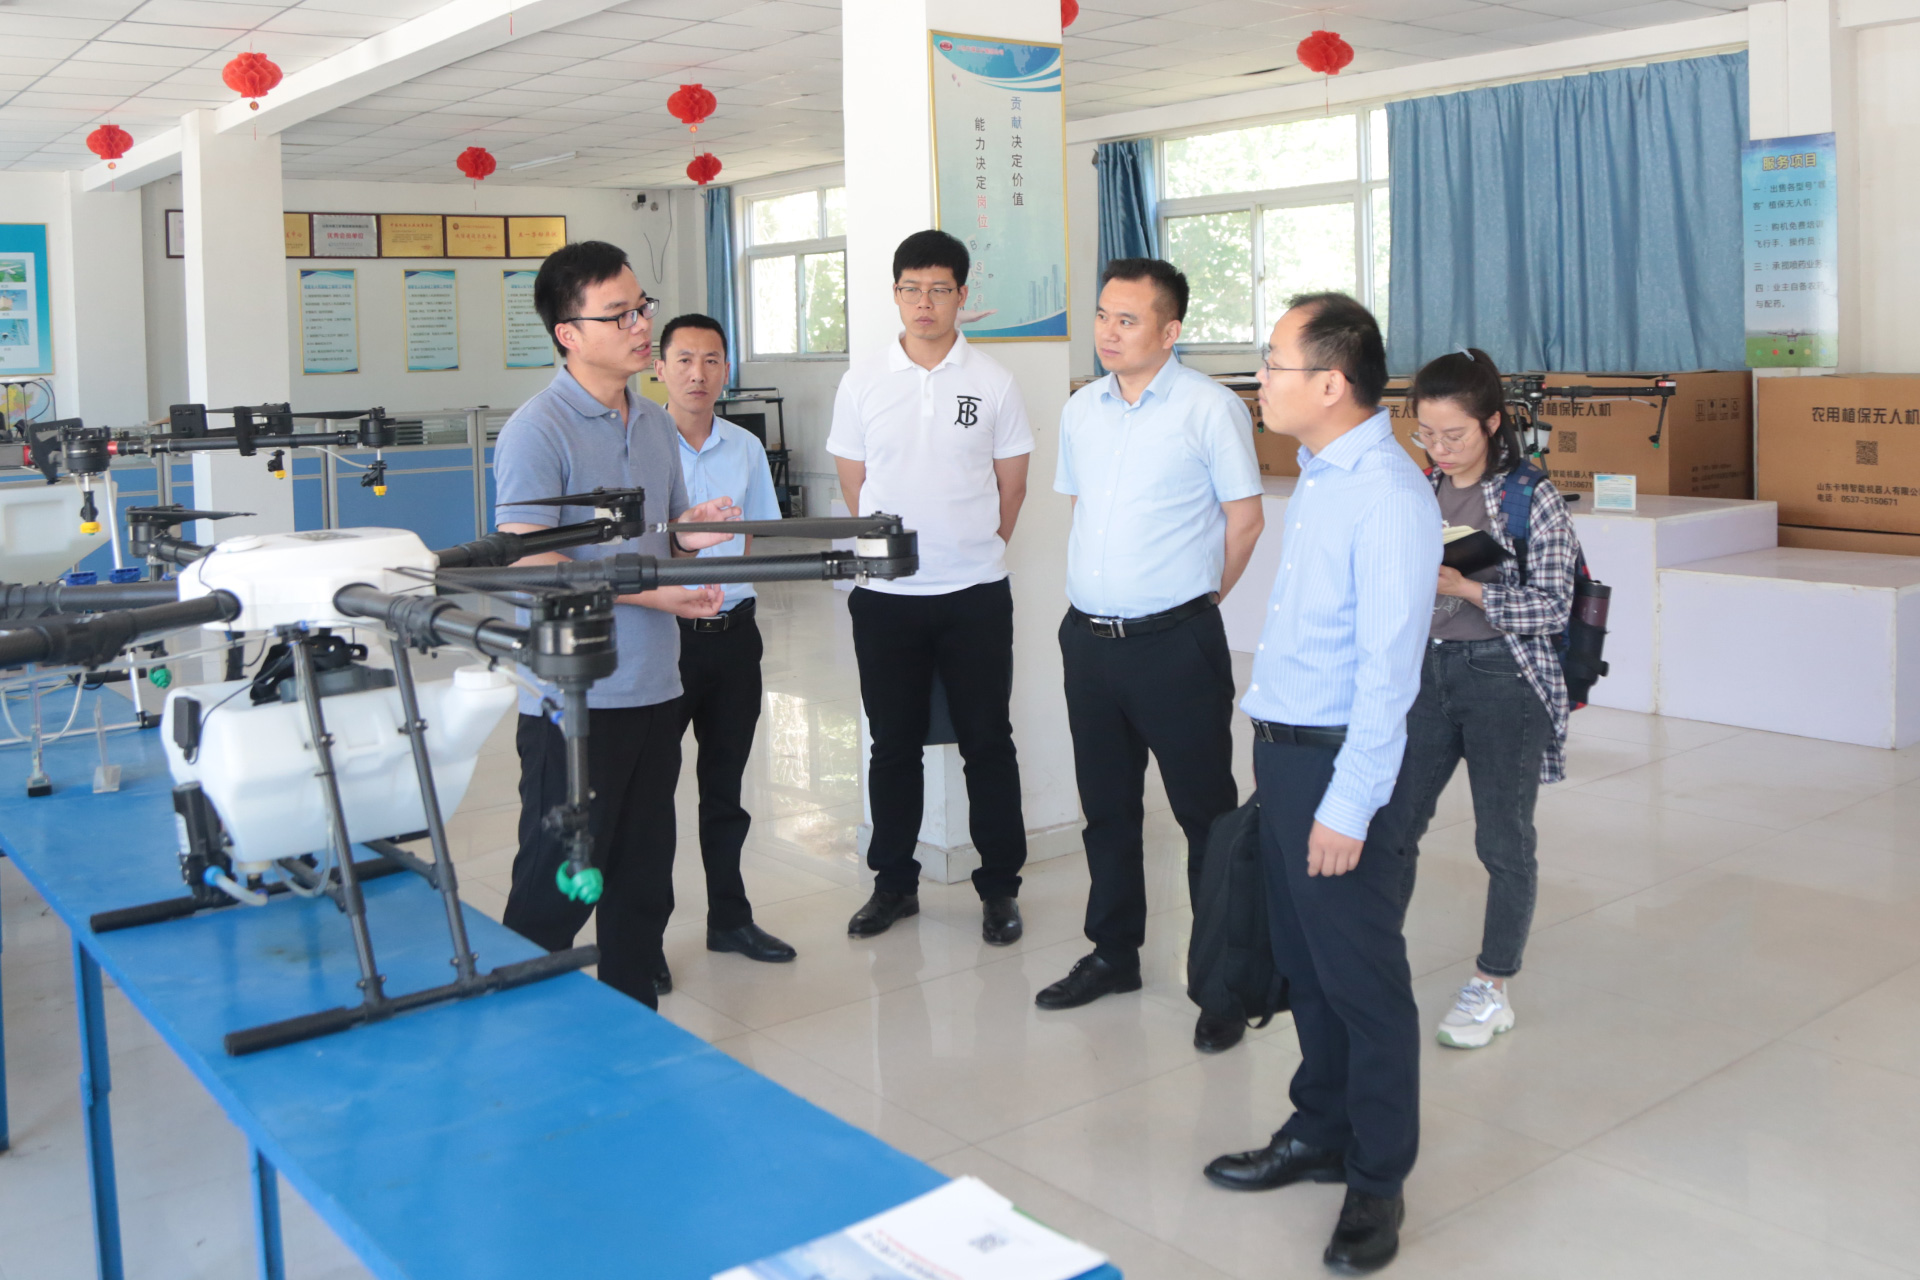 Warm Welcome China Software Testing Center Leadership Come Here China Coal Group Visit Guide